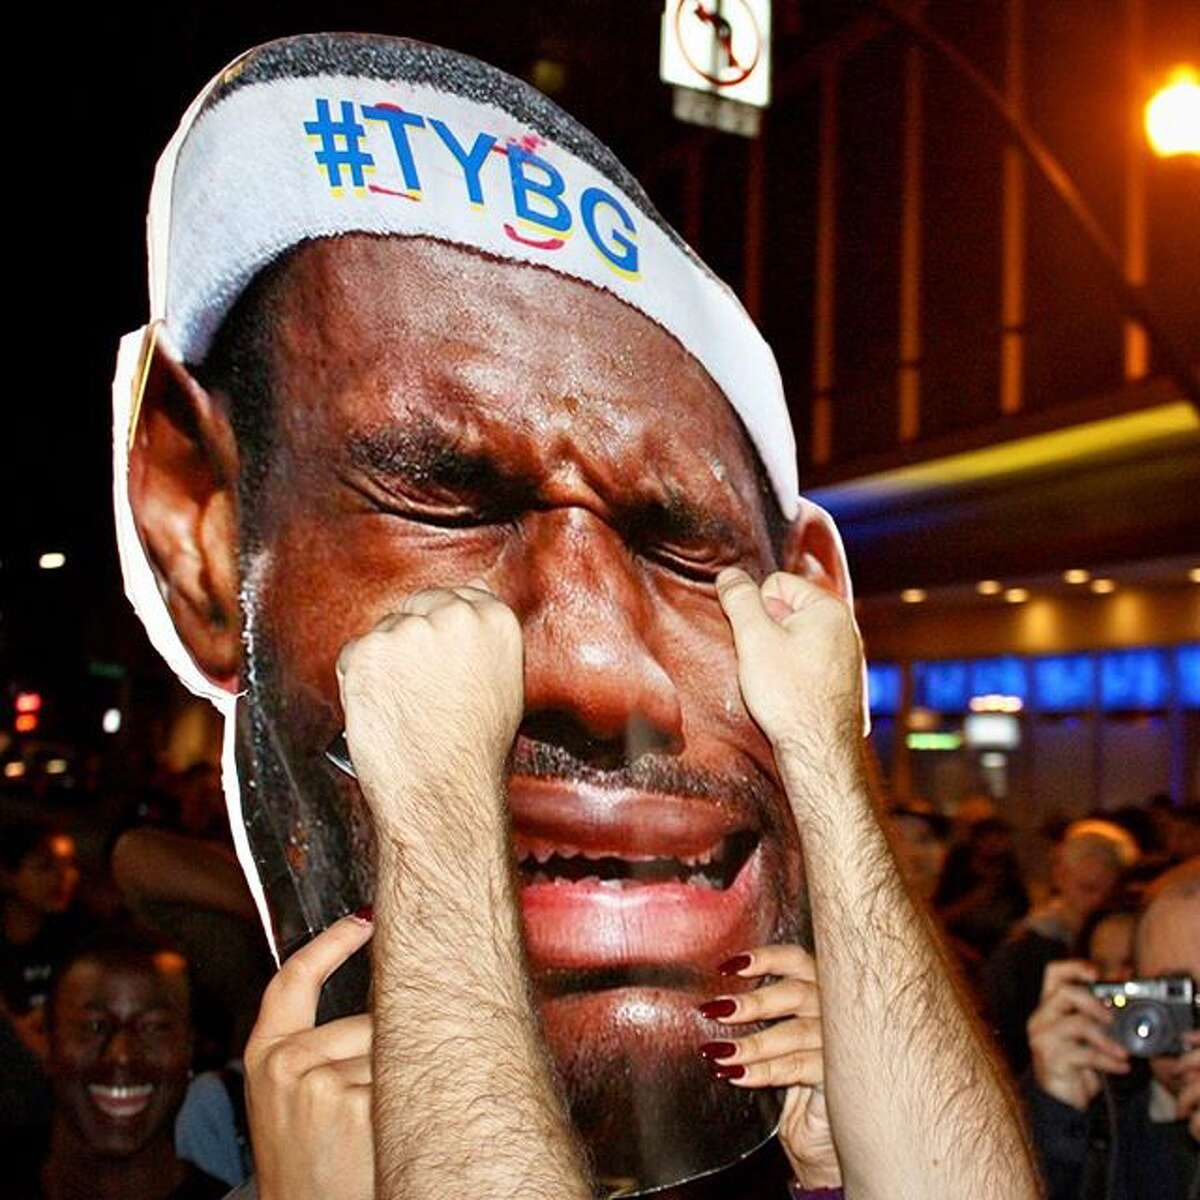 @kevinkelleherphotography found Warriors fans were more than happy to wipe away the tears of Lebron James while celebrating the team's NBA championship.